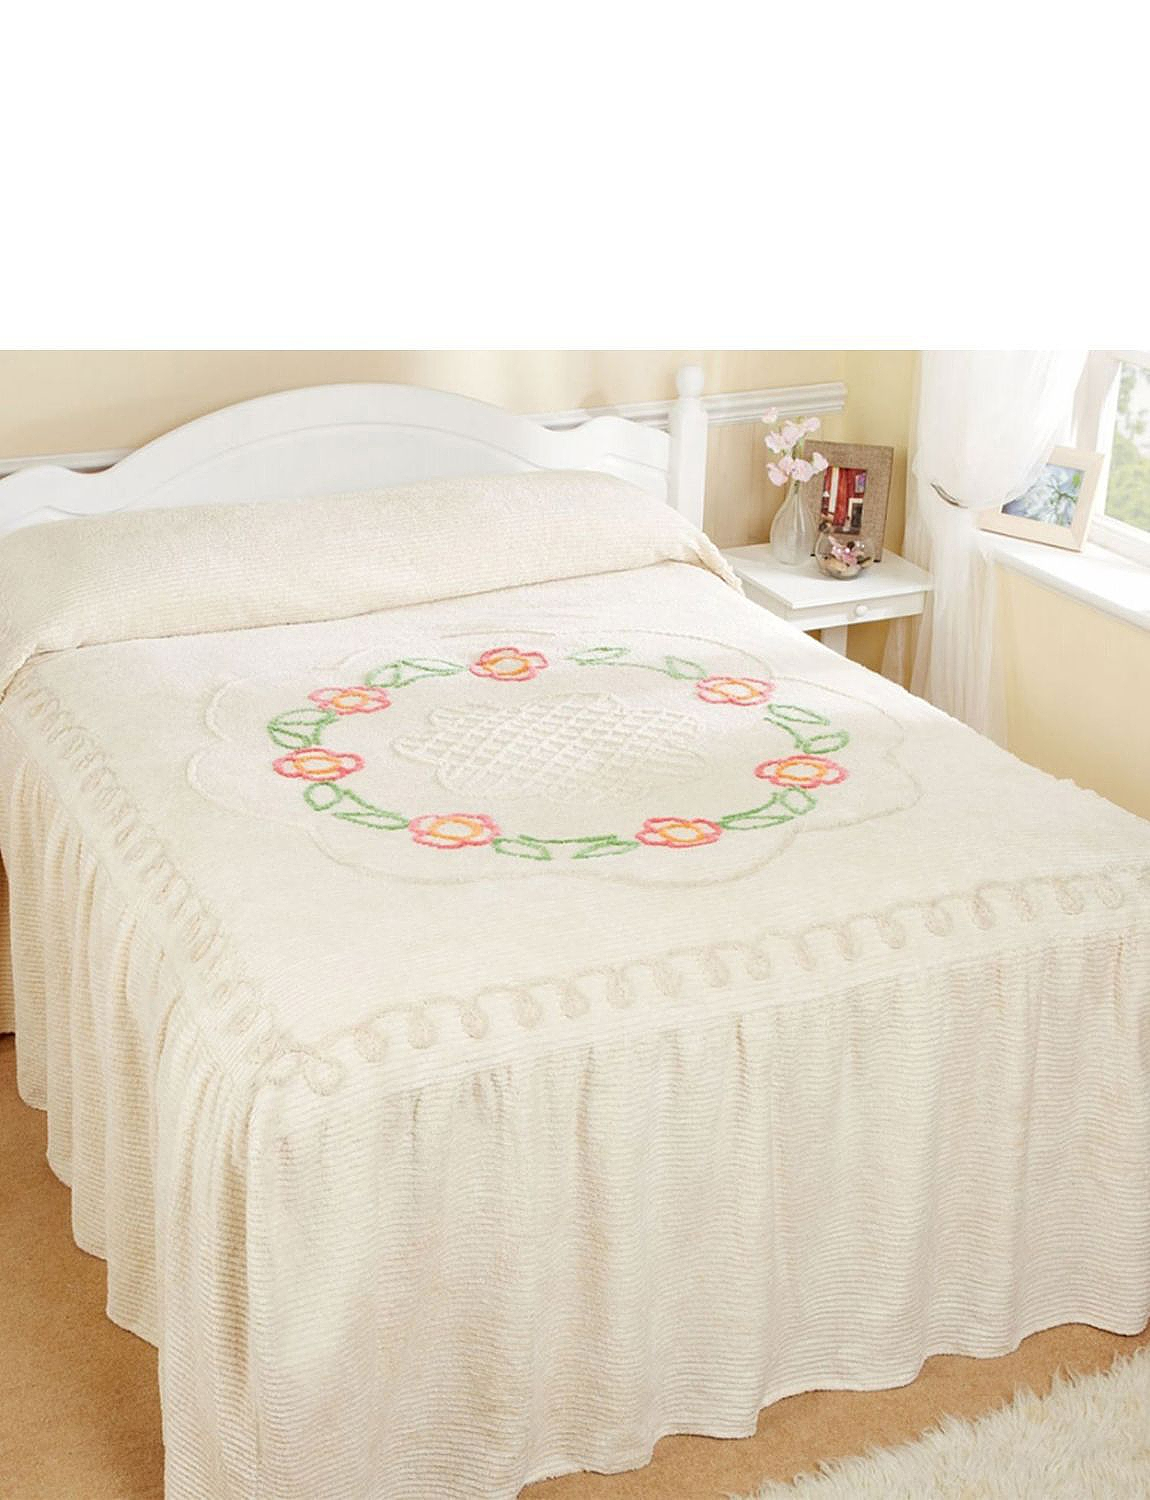 Flower Scroll Fitted Candlewick Bedspread By Diana Cowpe